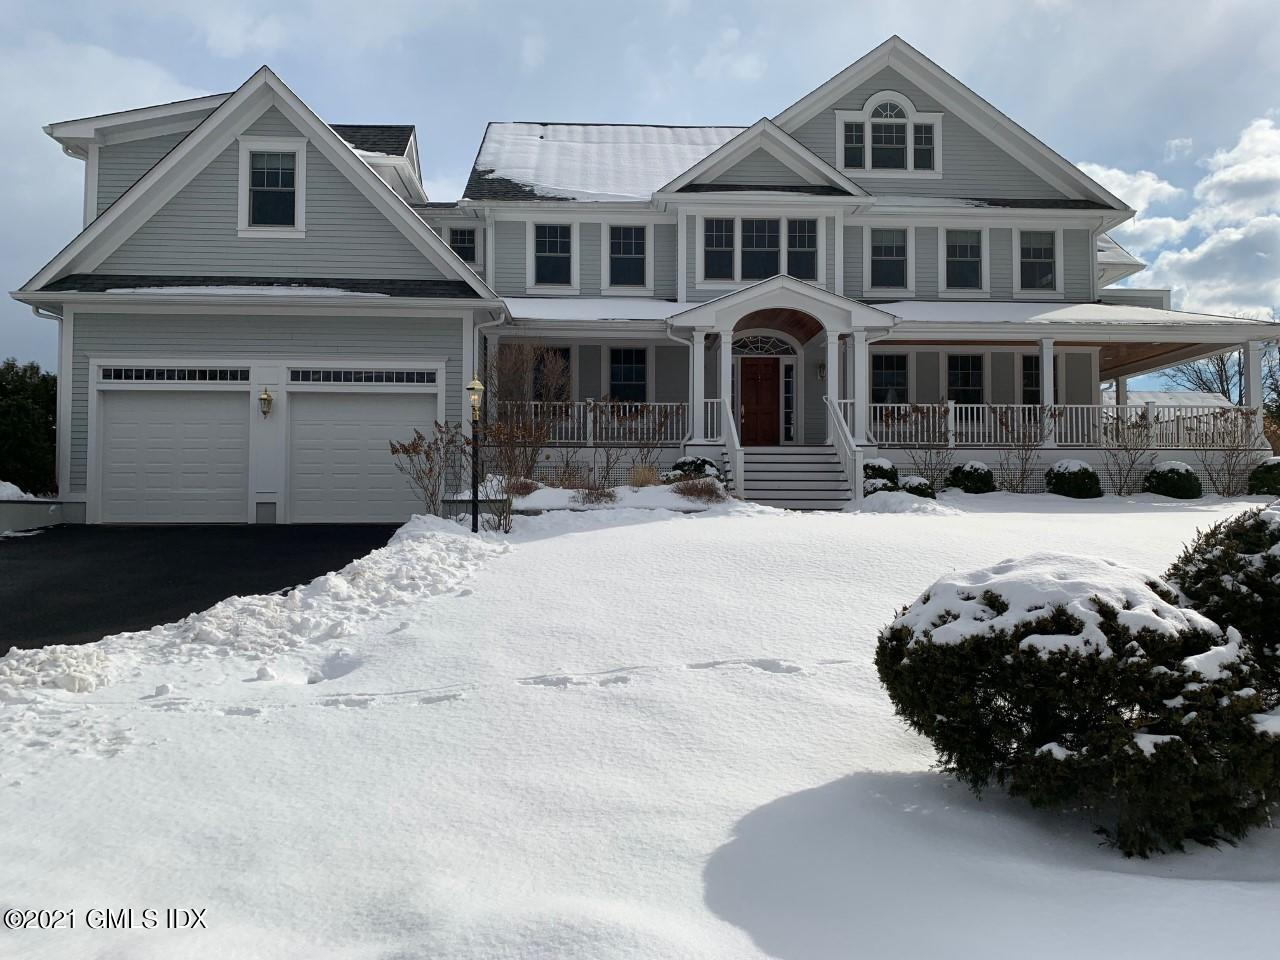 26 Sunset Road, Old Greenwich, Connecticut 06870, 6 Bedrooms Bedrooms, ,6 BathroomsBathrooms,Single family,For Rent,Sunset,112258